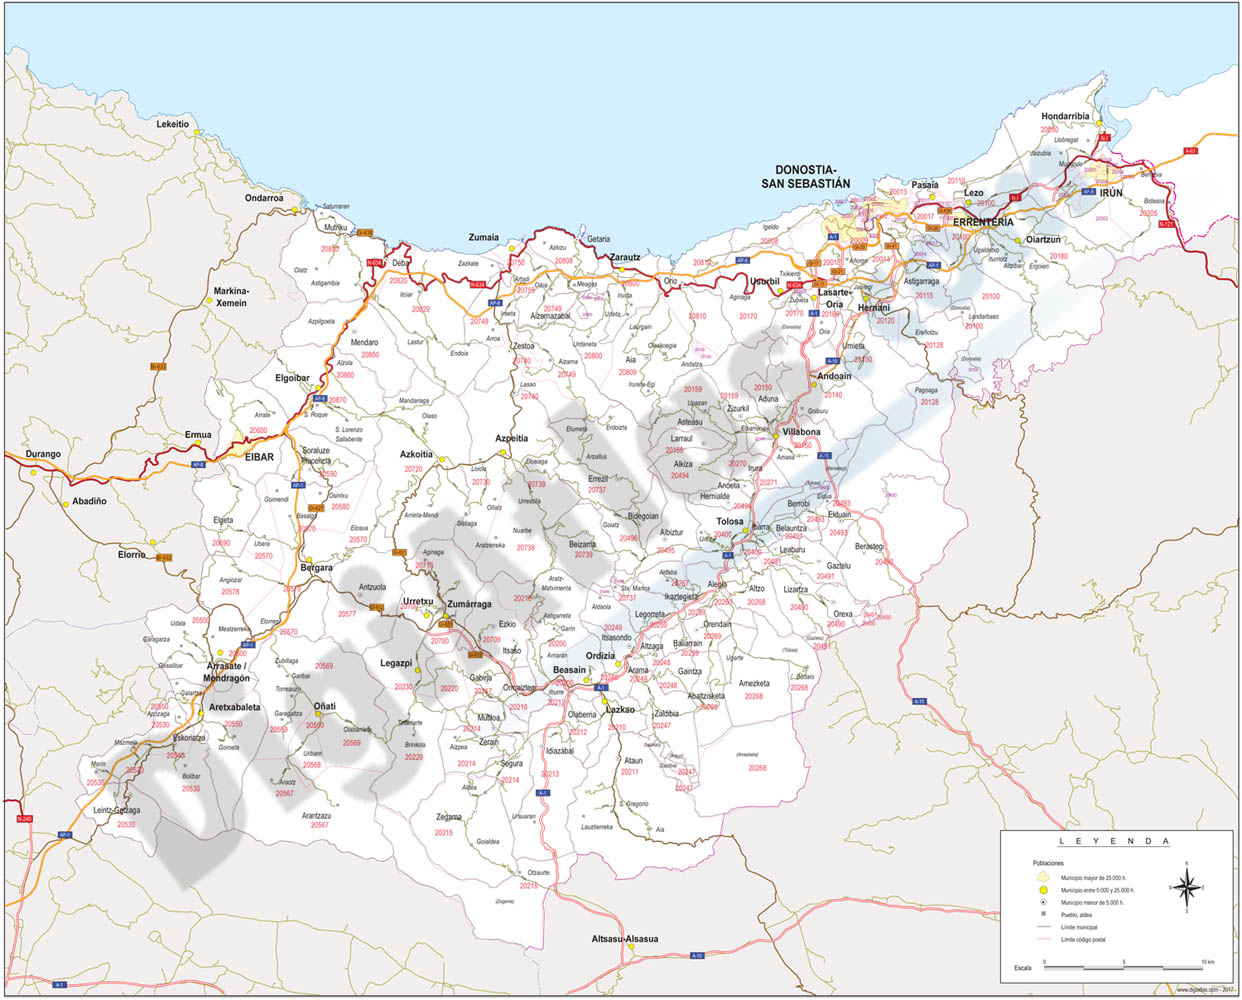 Gipuzkoa map with municipalities, major roads and postal codes